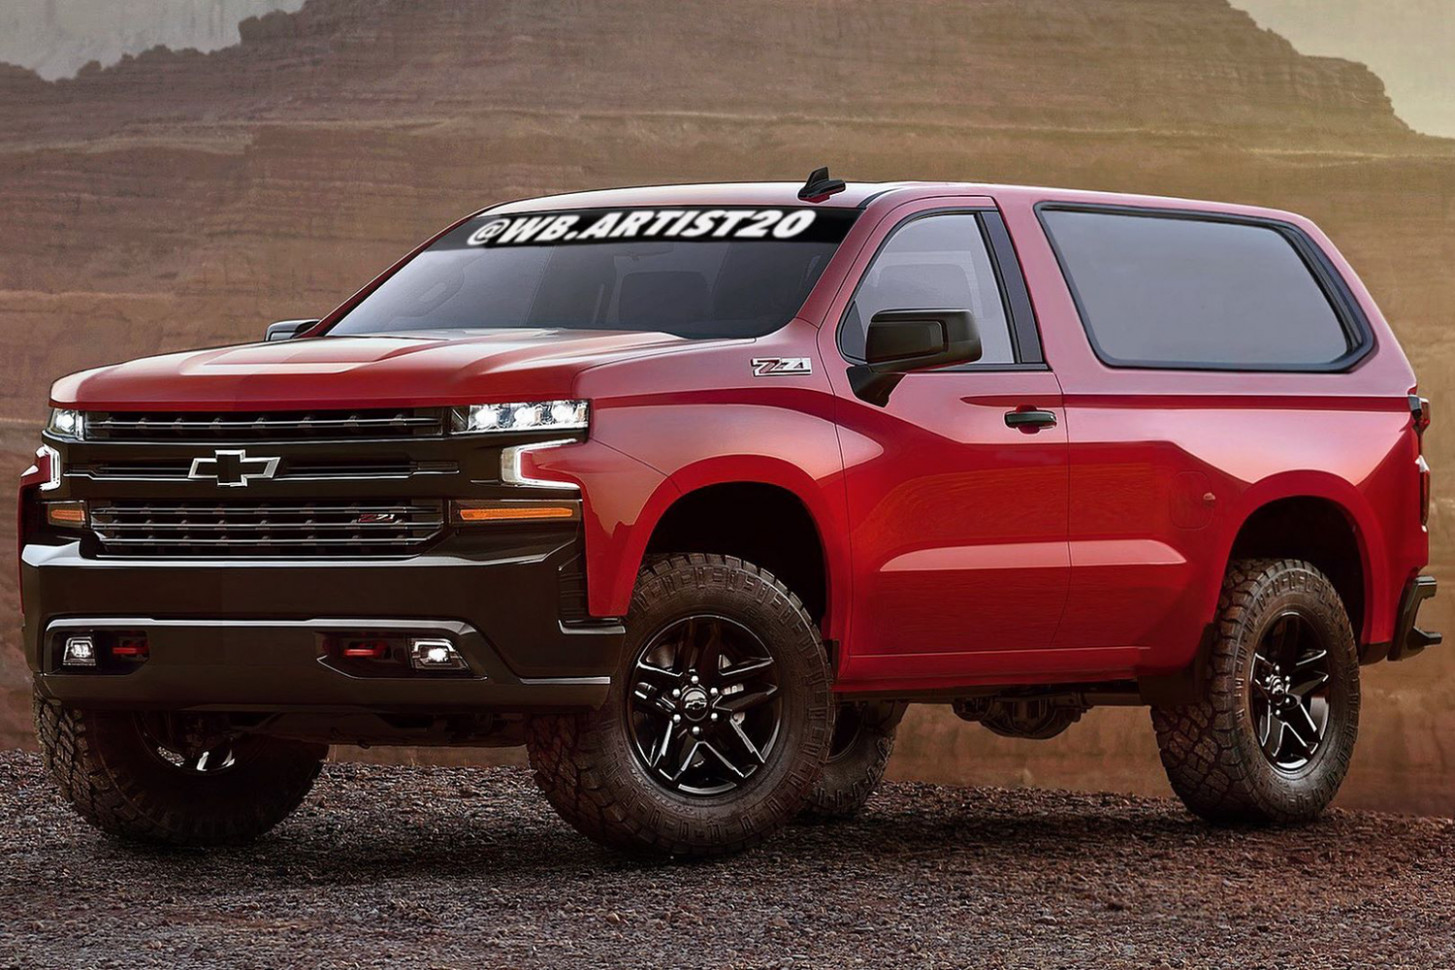 Picture Chevrolet Blazer 2022